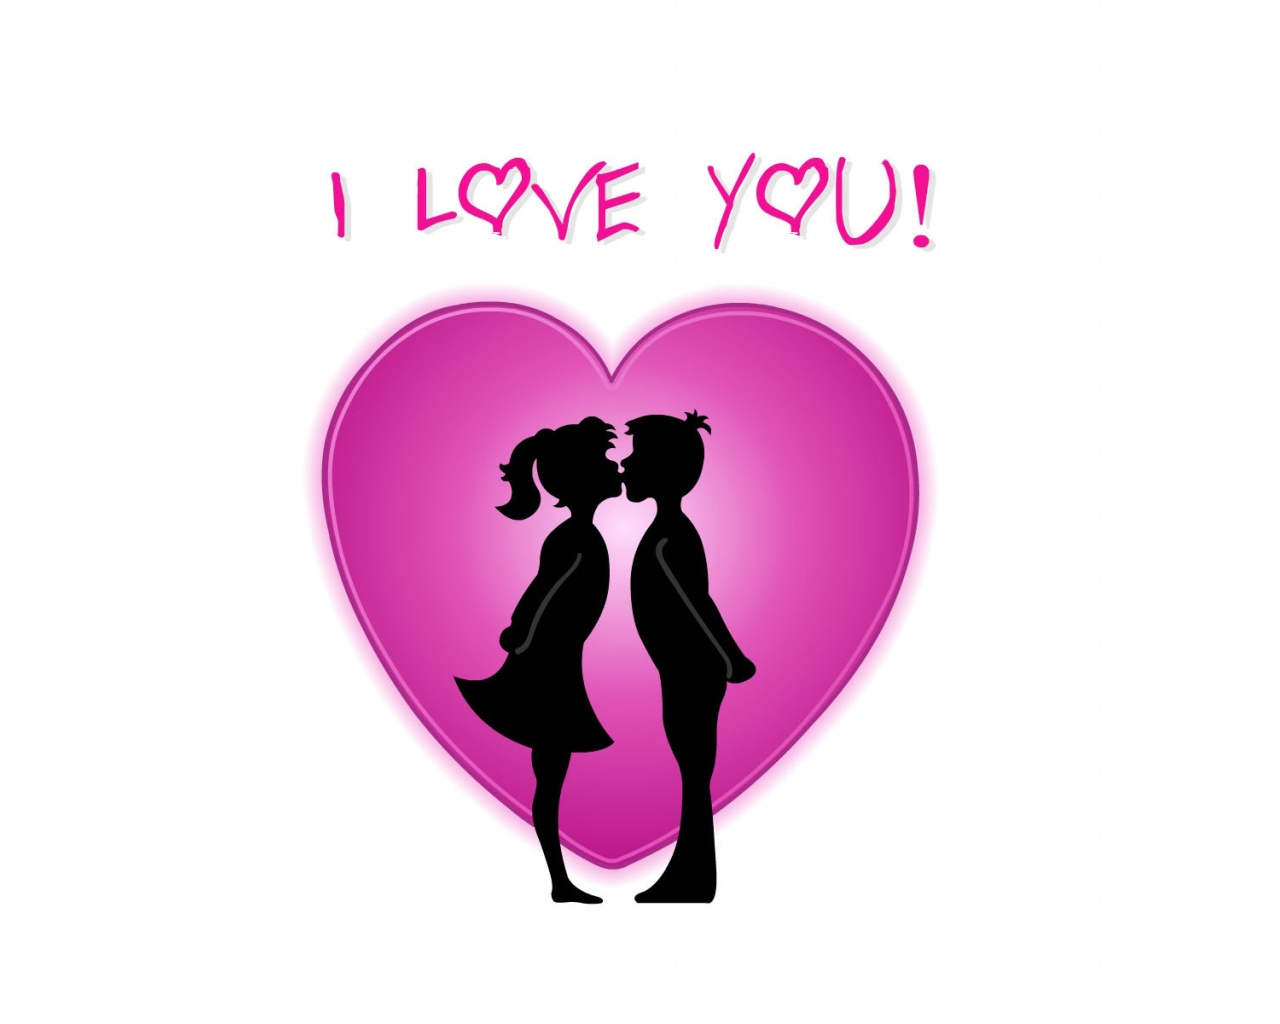 1280x1024 I love you desktop Pc and Mac wallpaper